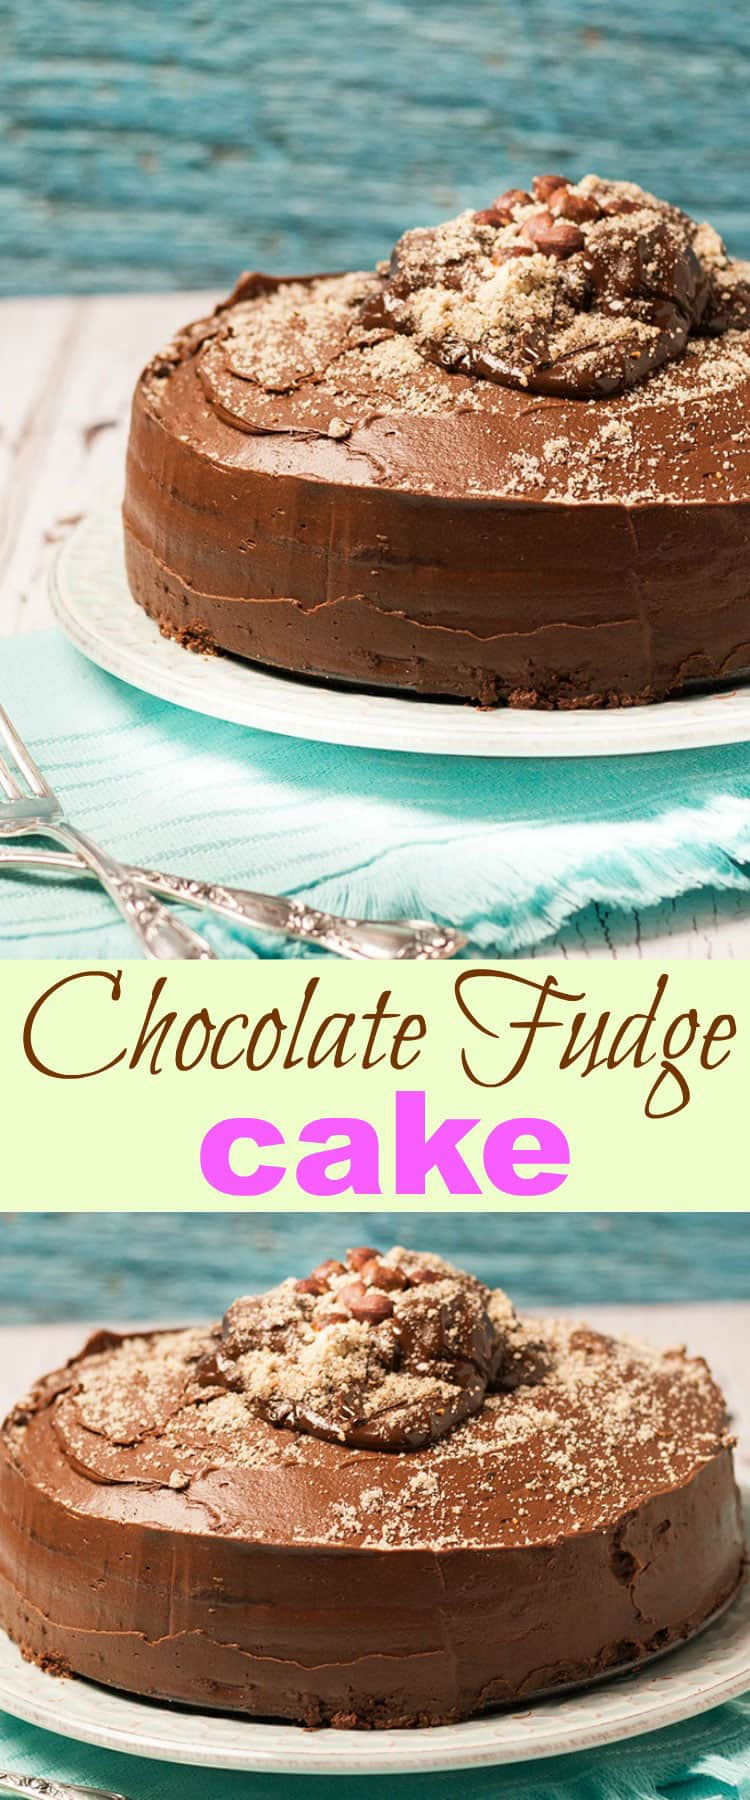 easy chocolate fudge cake recipe best chocolate fudge cake recipe in the world chocolate fudge layer cake dark chocolate fudge cake recipe super moist chocolate fudge cake recipe gooey chocolate fudge cake fudge cake filling chocolate fudge cake recipe jamie oliver